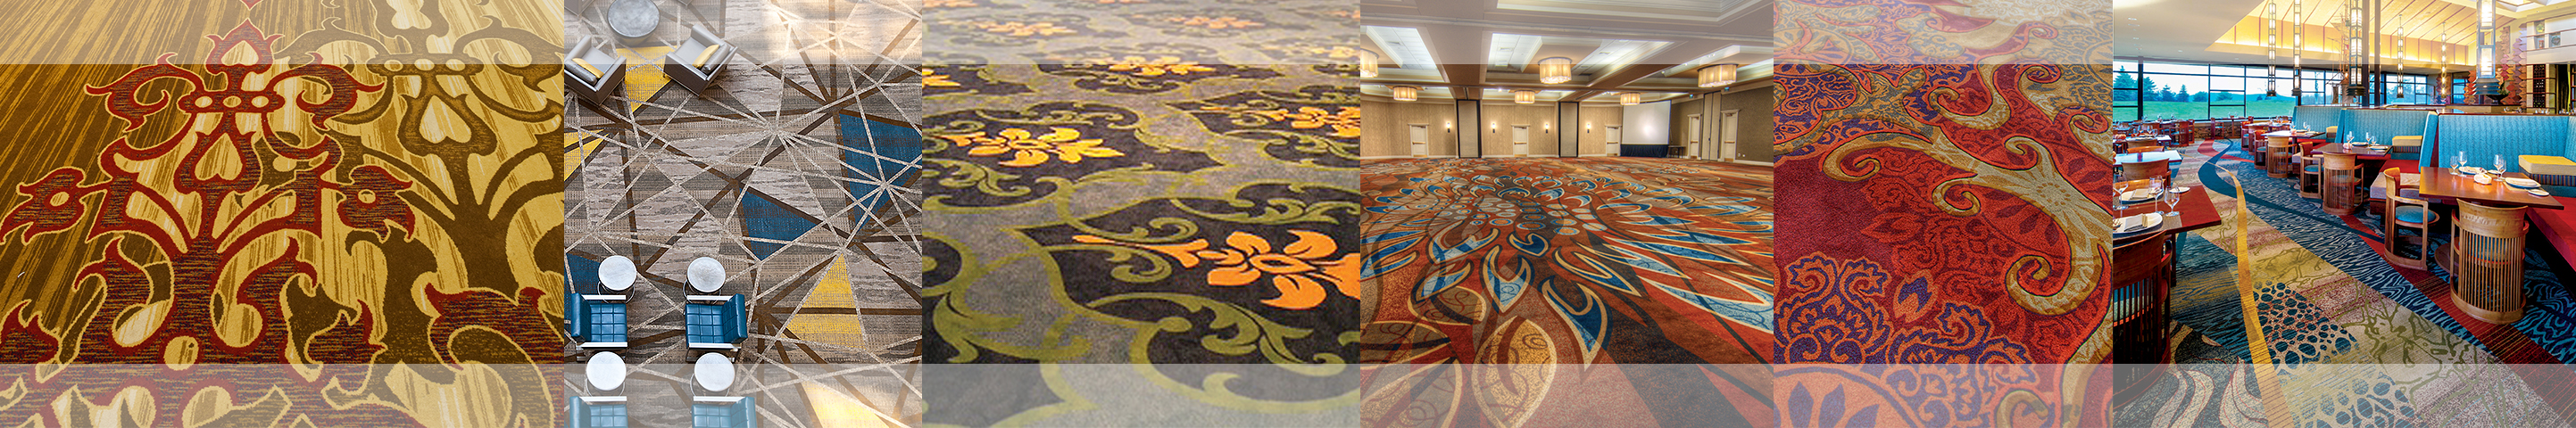 WHY CARPET BANNER